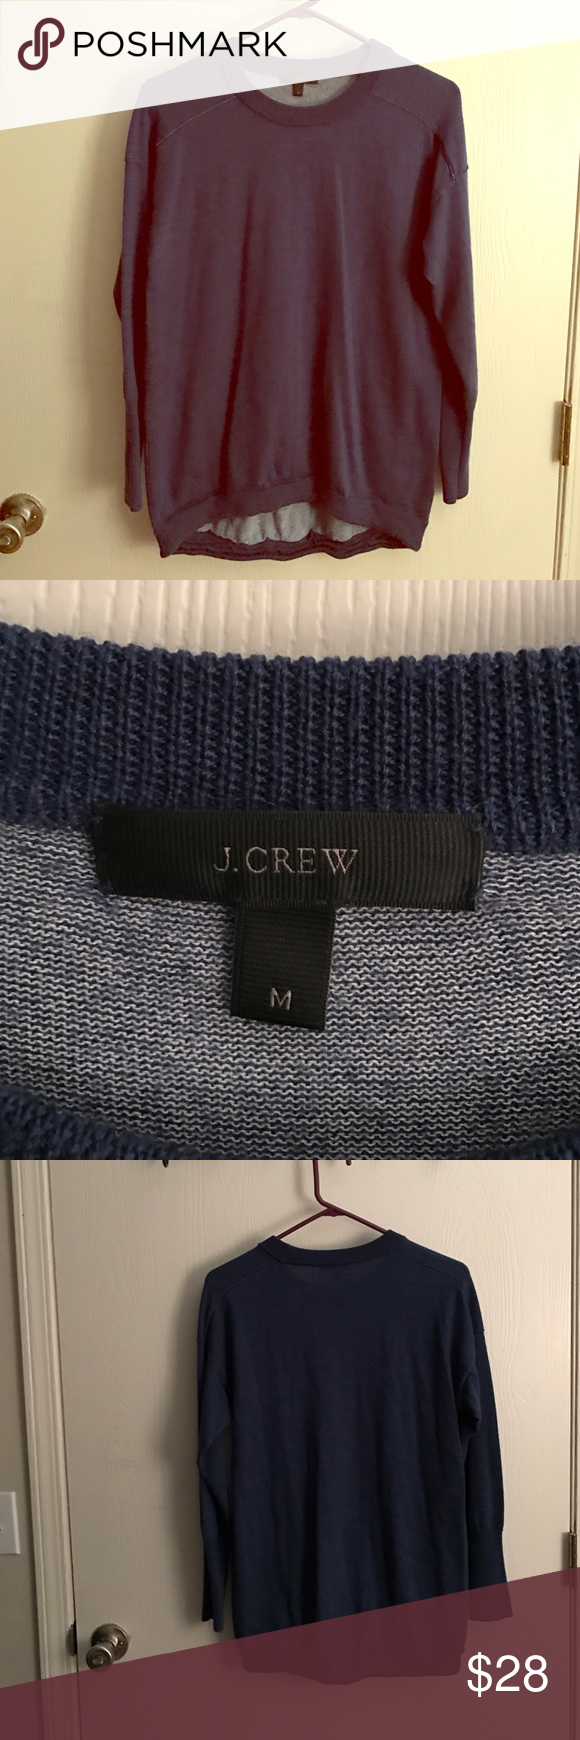 J crew wool sweater Beautiful blue sweater. Can be dressed up or down. Lightly worn no flaws! J. Crew Sweaters Crew & Scoop Necks